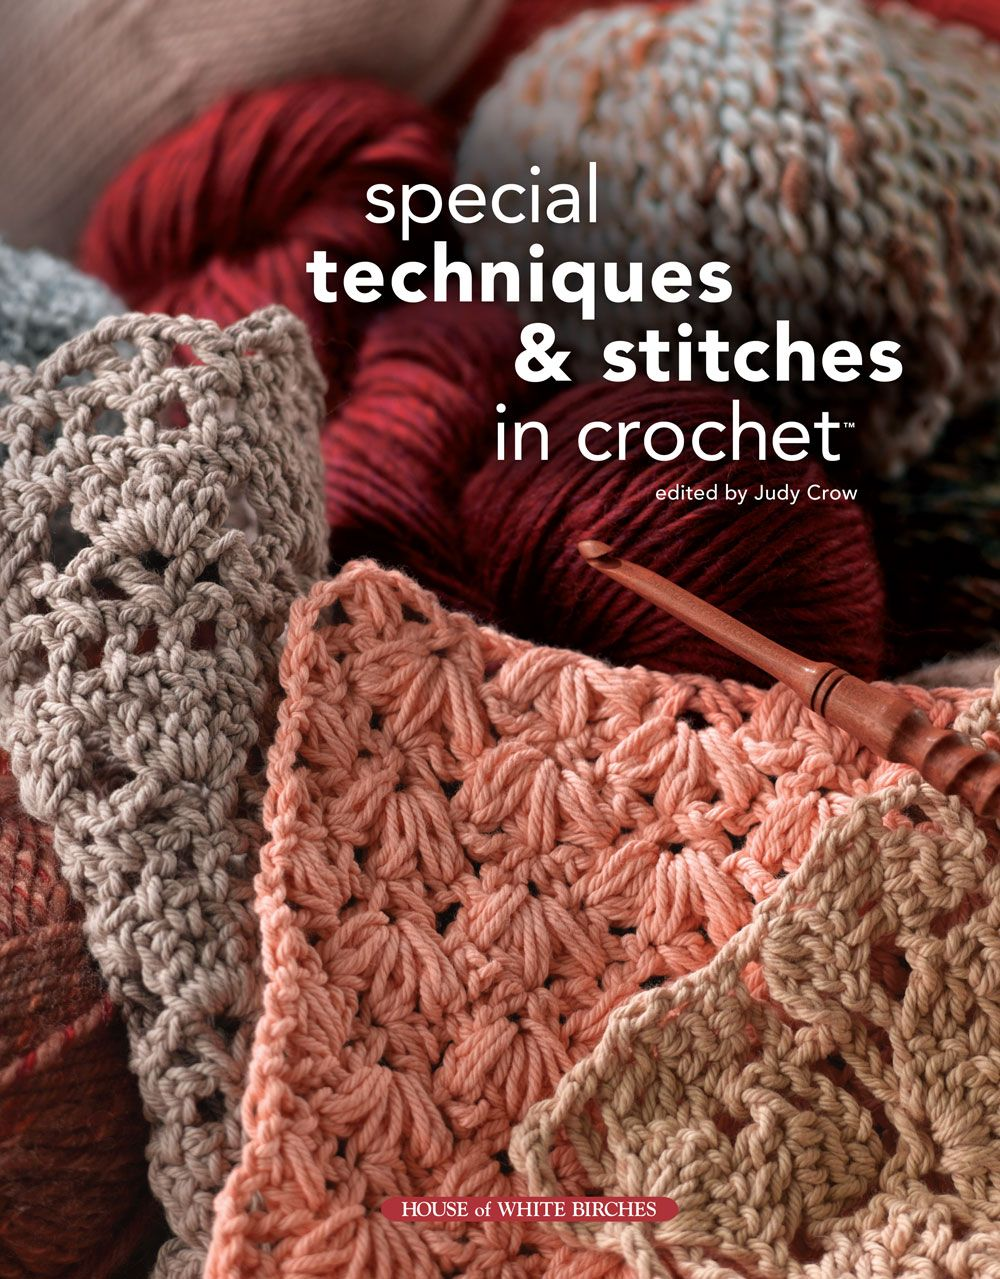 Crochet techniques | Nifty Knitting and Crocheting | Pinterest ...